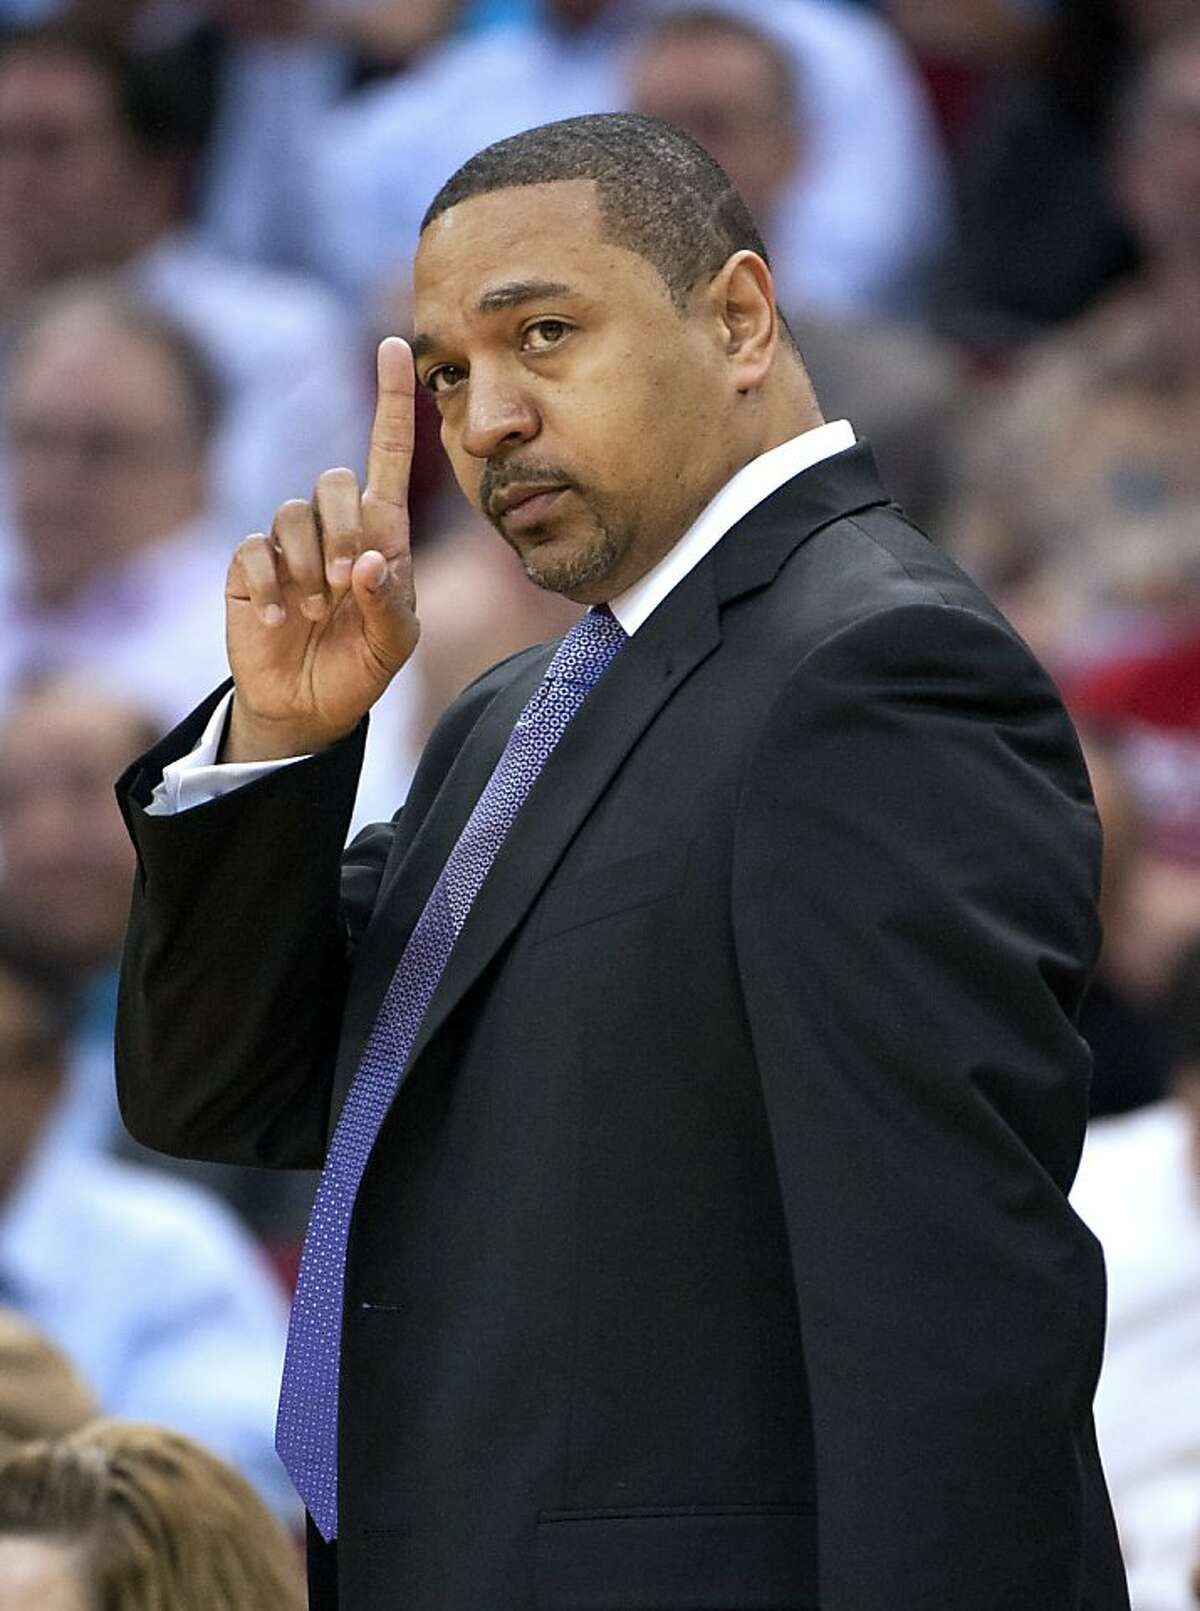 Golden State Warriors head coach Mark Jackson signals a play during the first quarter of an NBA basketball game against the Houston Rockets, Tuesday, Feb. 5, 2013, in Houston. (AP Photo/Dave Einsel)